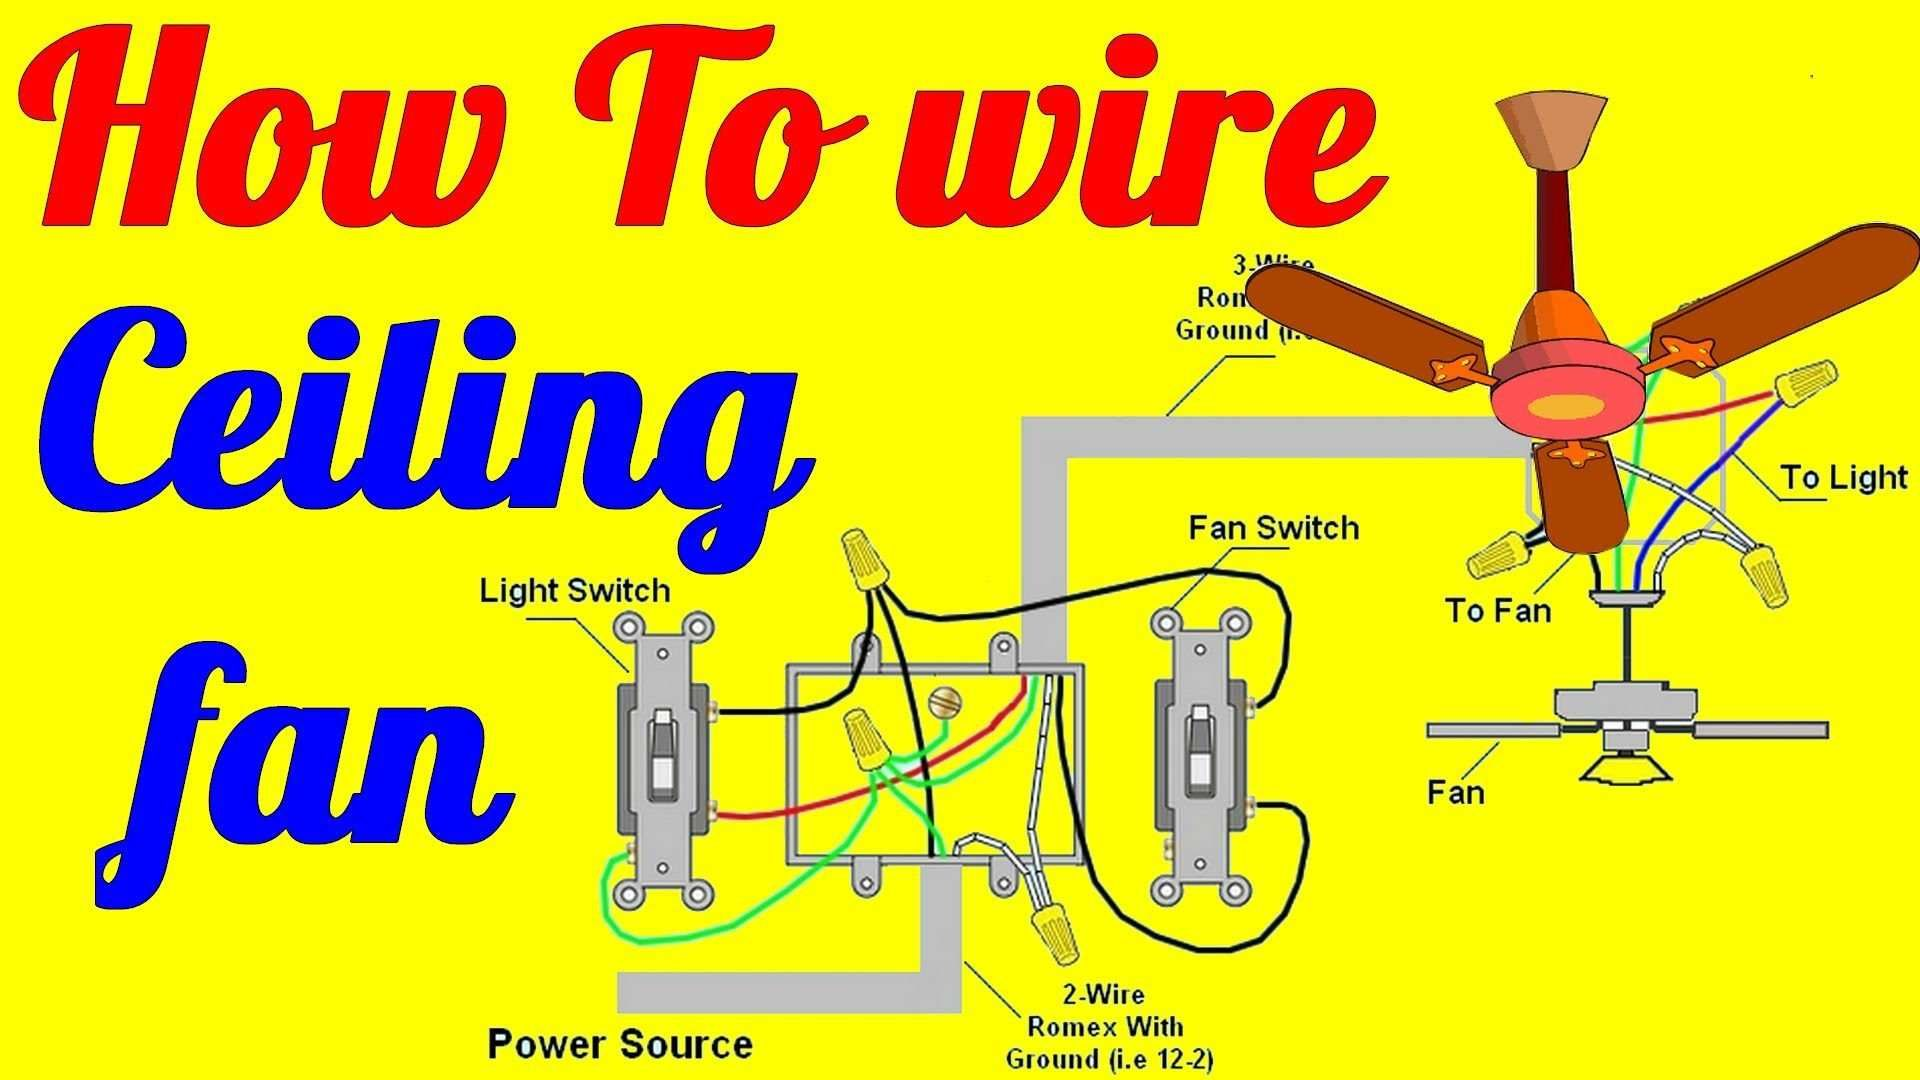 wiring diagram for hunter ceiling fan with light elegant how to wire ceiling fan with light switch youtube harboreze wiring [ 1920 x 1080 Pixel ]